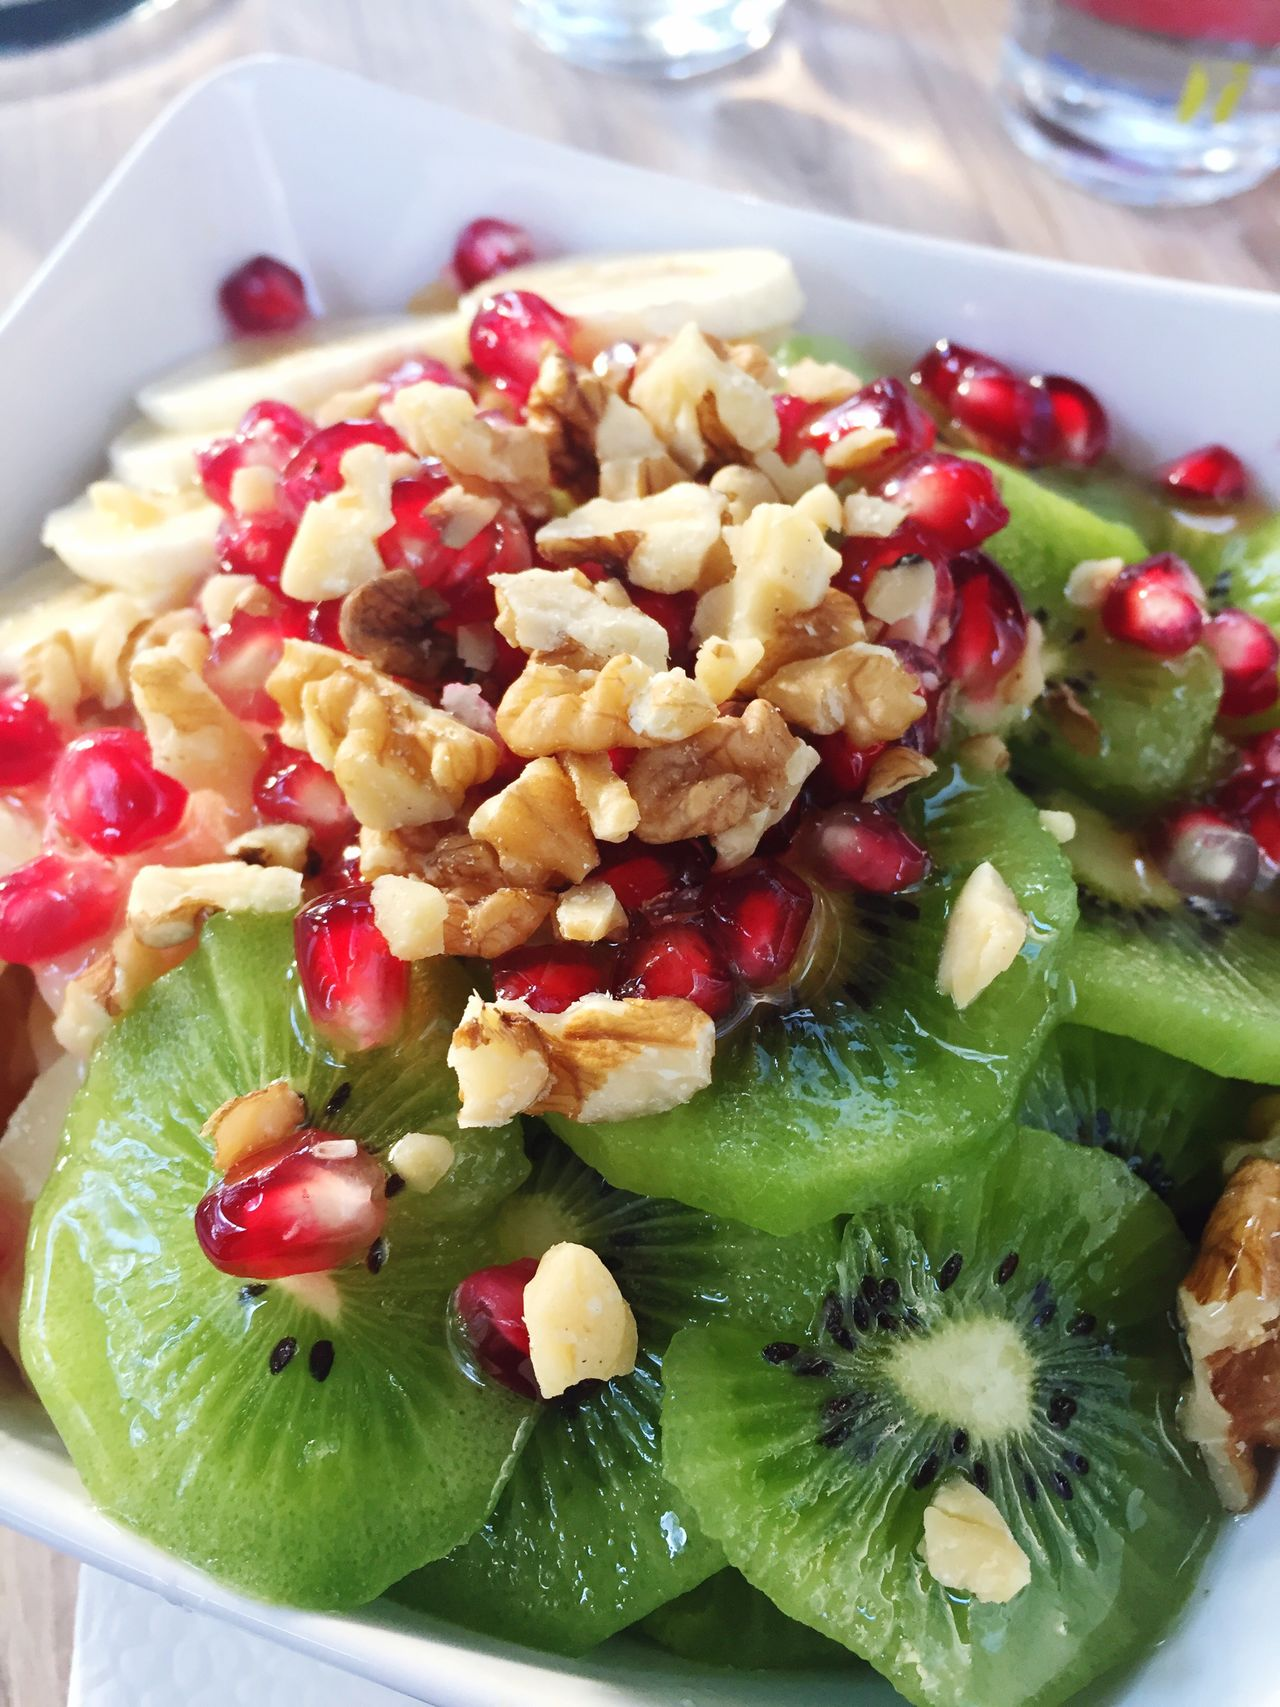 Love making this fruitsalad ❤️ Food And Drink Freshness Ready-to-eat Fruit High Angle View Close-up No People Indoors  Plate Healthy Eating Nutrition Kiwi Kiwifruit Bananas Pomegranate Nut Walnuts Walnut Fruitporn Fruits Fruitsalad Fruit Photography Healthy Healthy Lifestyle